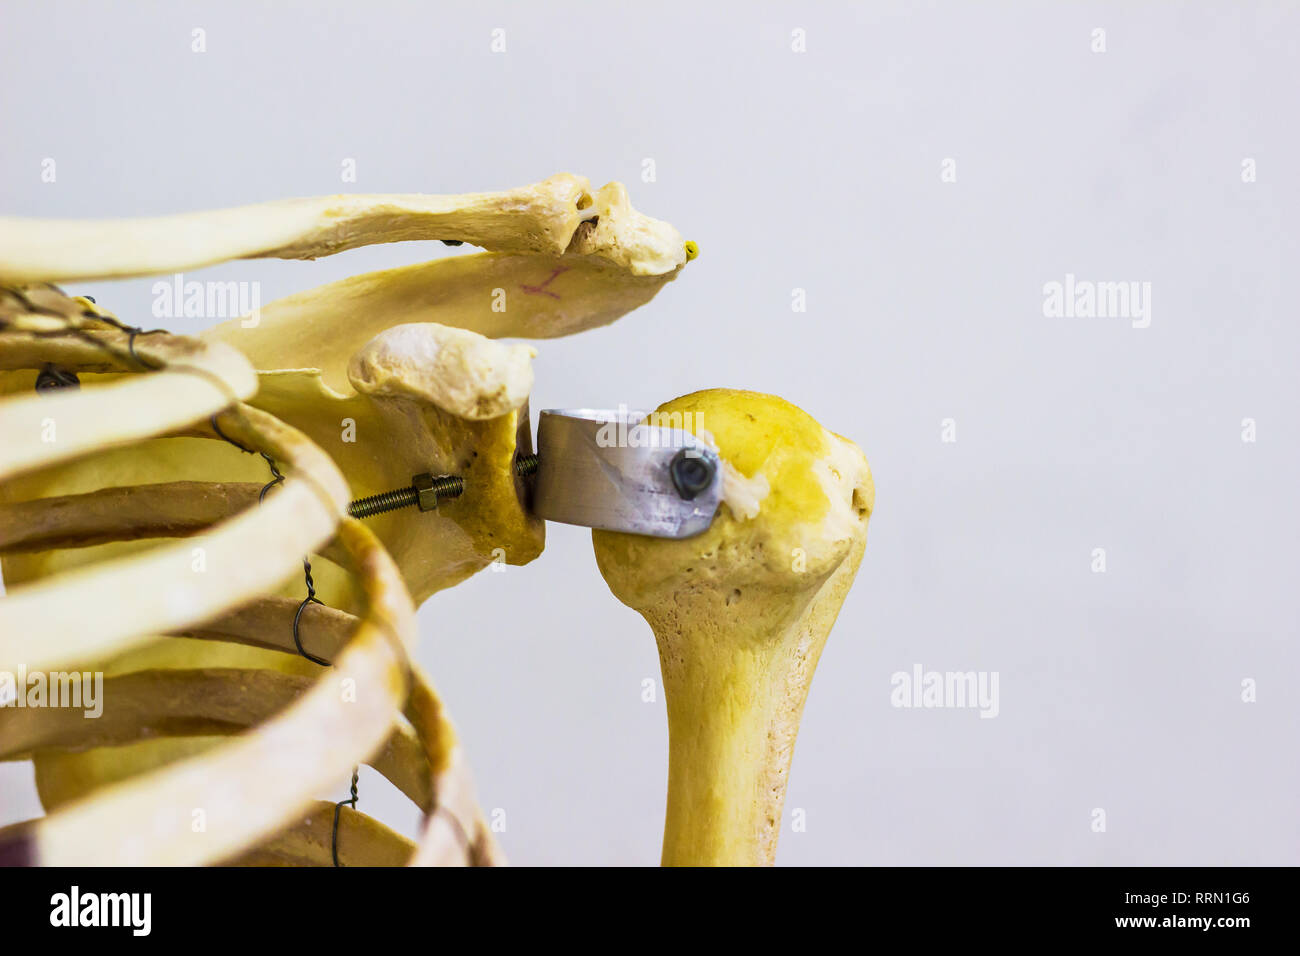 articulated humerus clavicle and scapula bones showing human left shoulder joint anatomy in white background - Stock Image